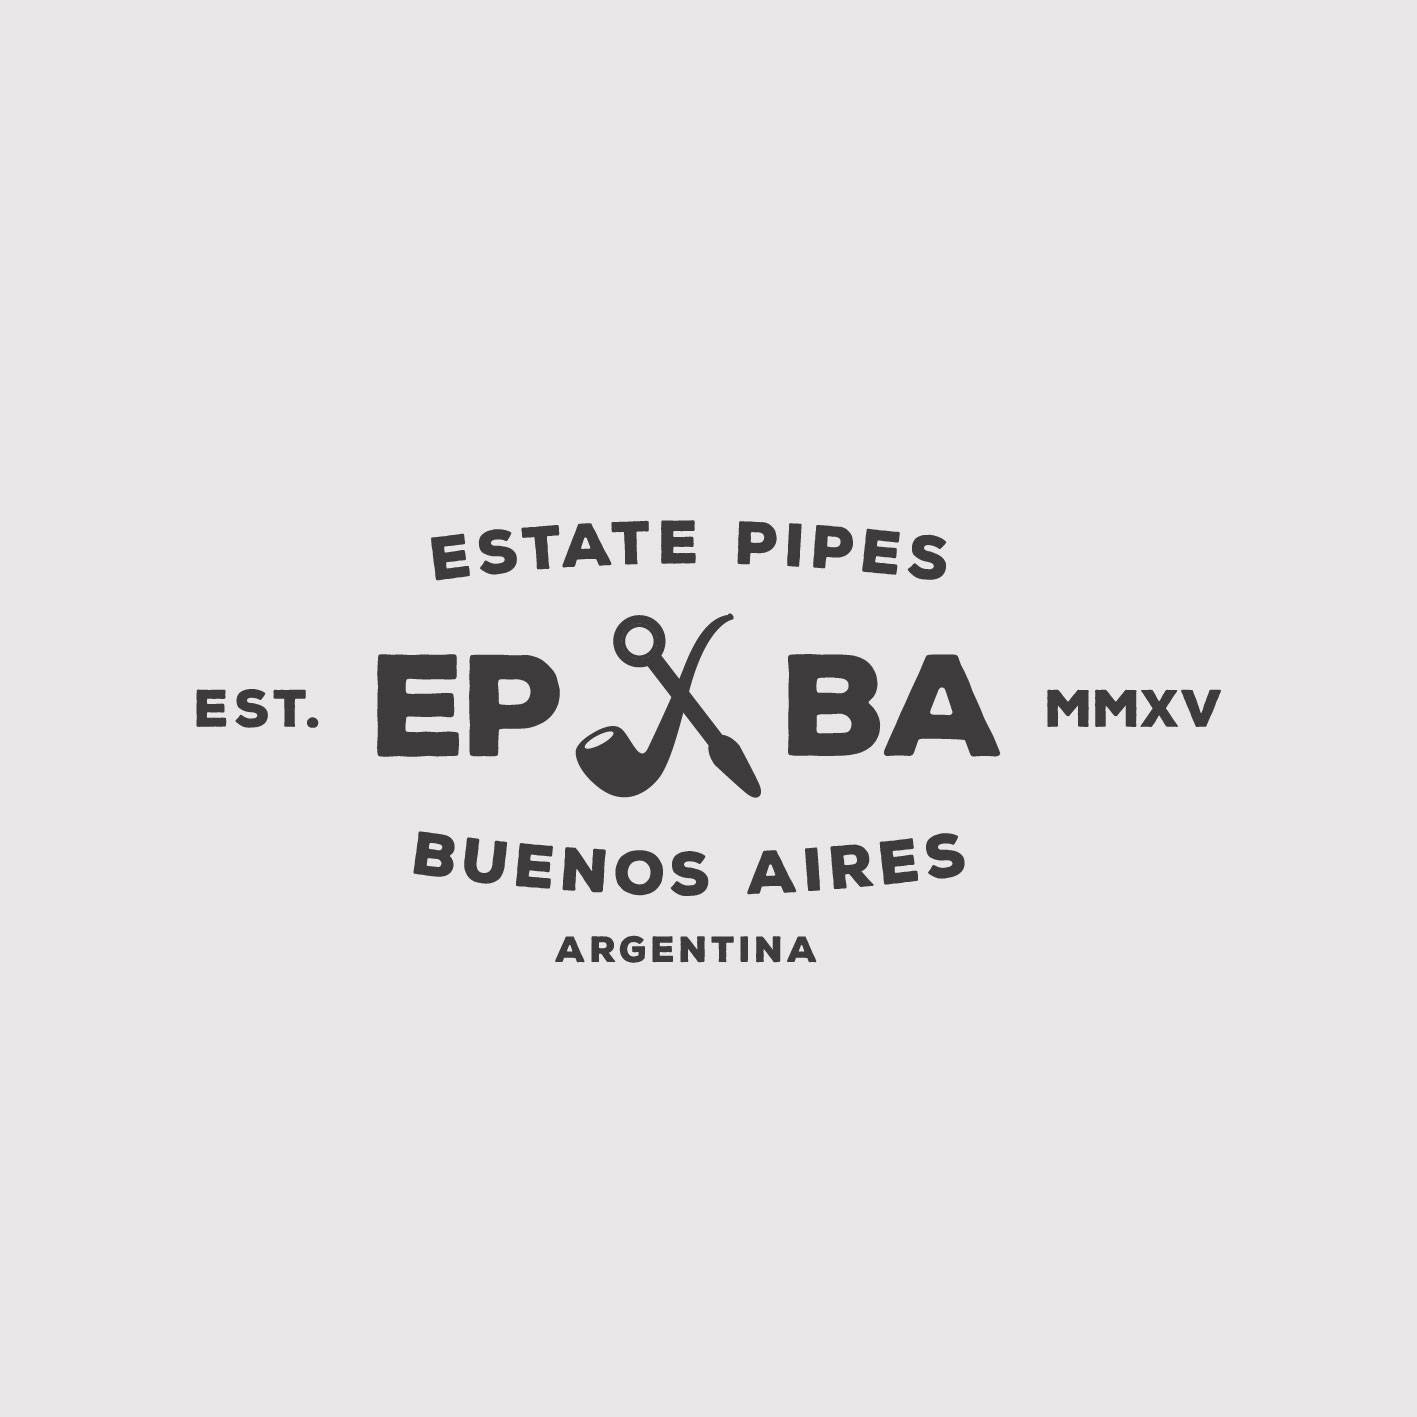 Estate Pipes Buenos Aires